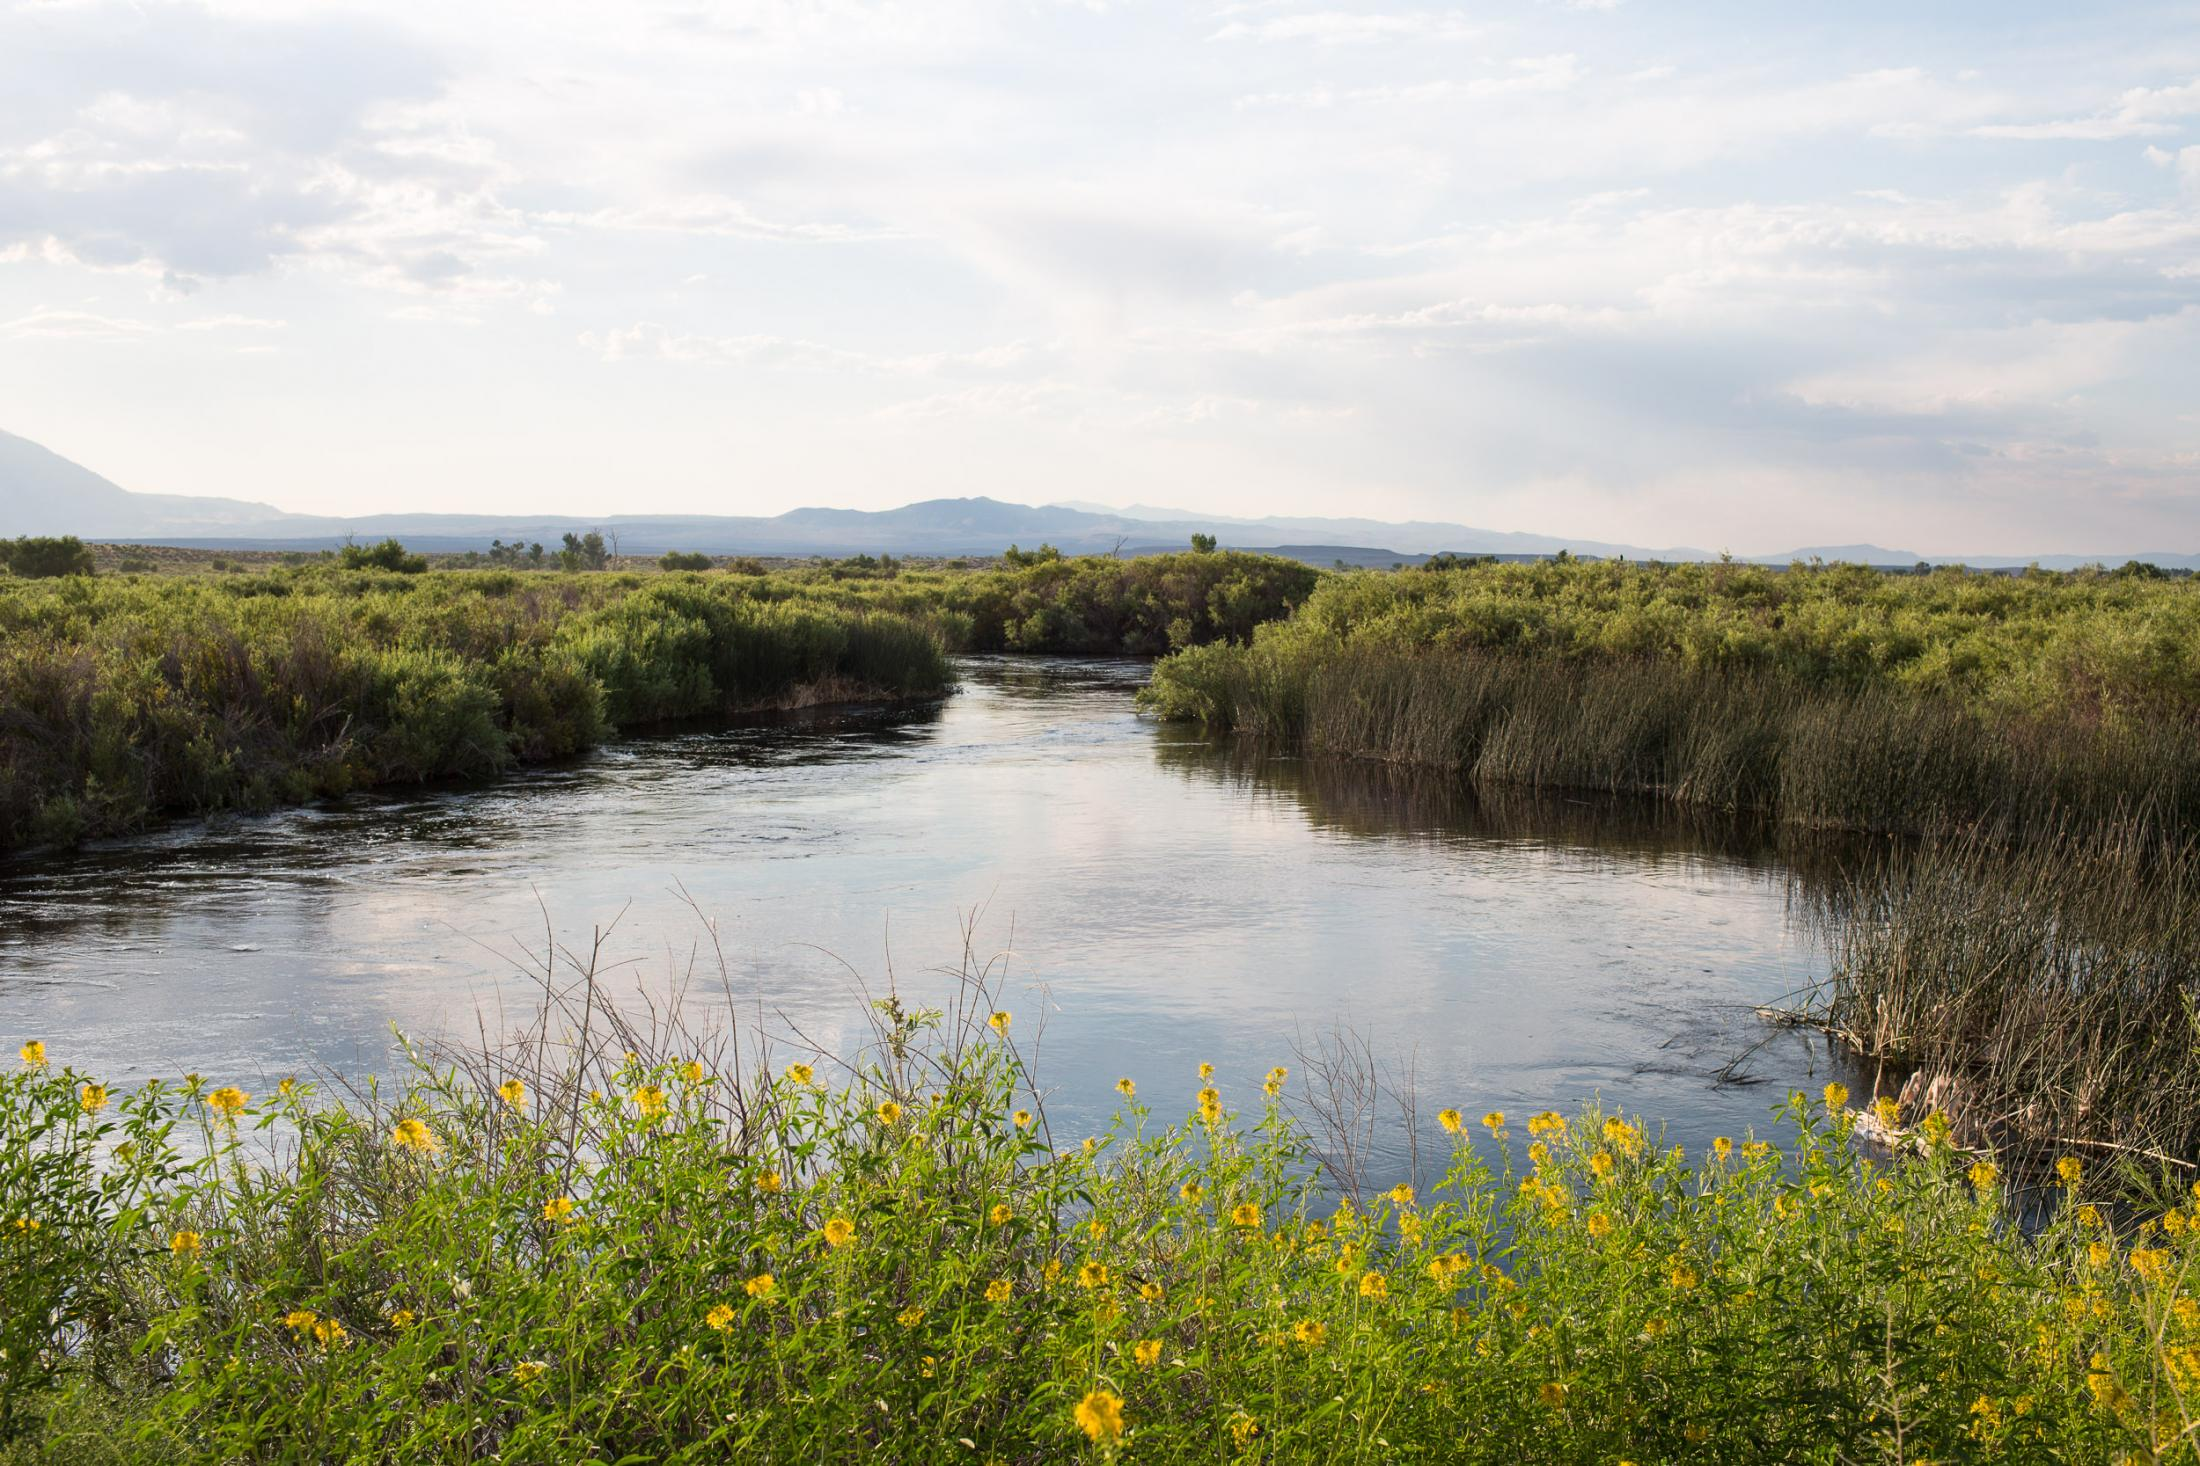 14. The Owens river. June 2017